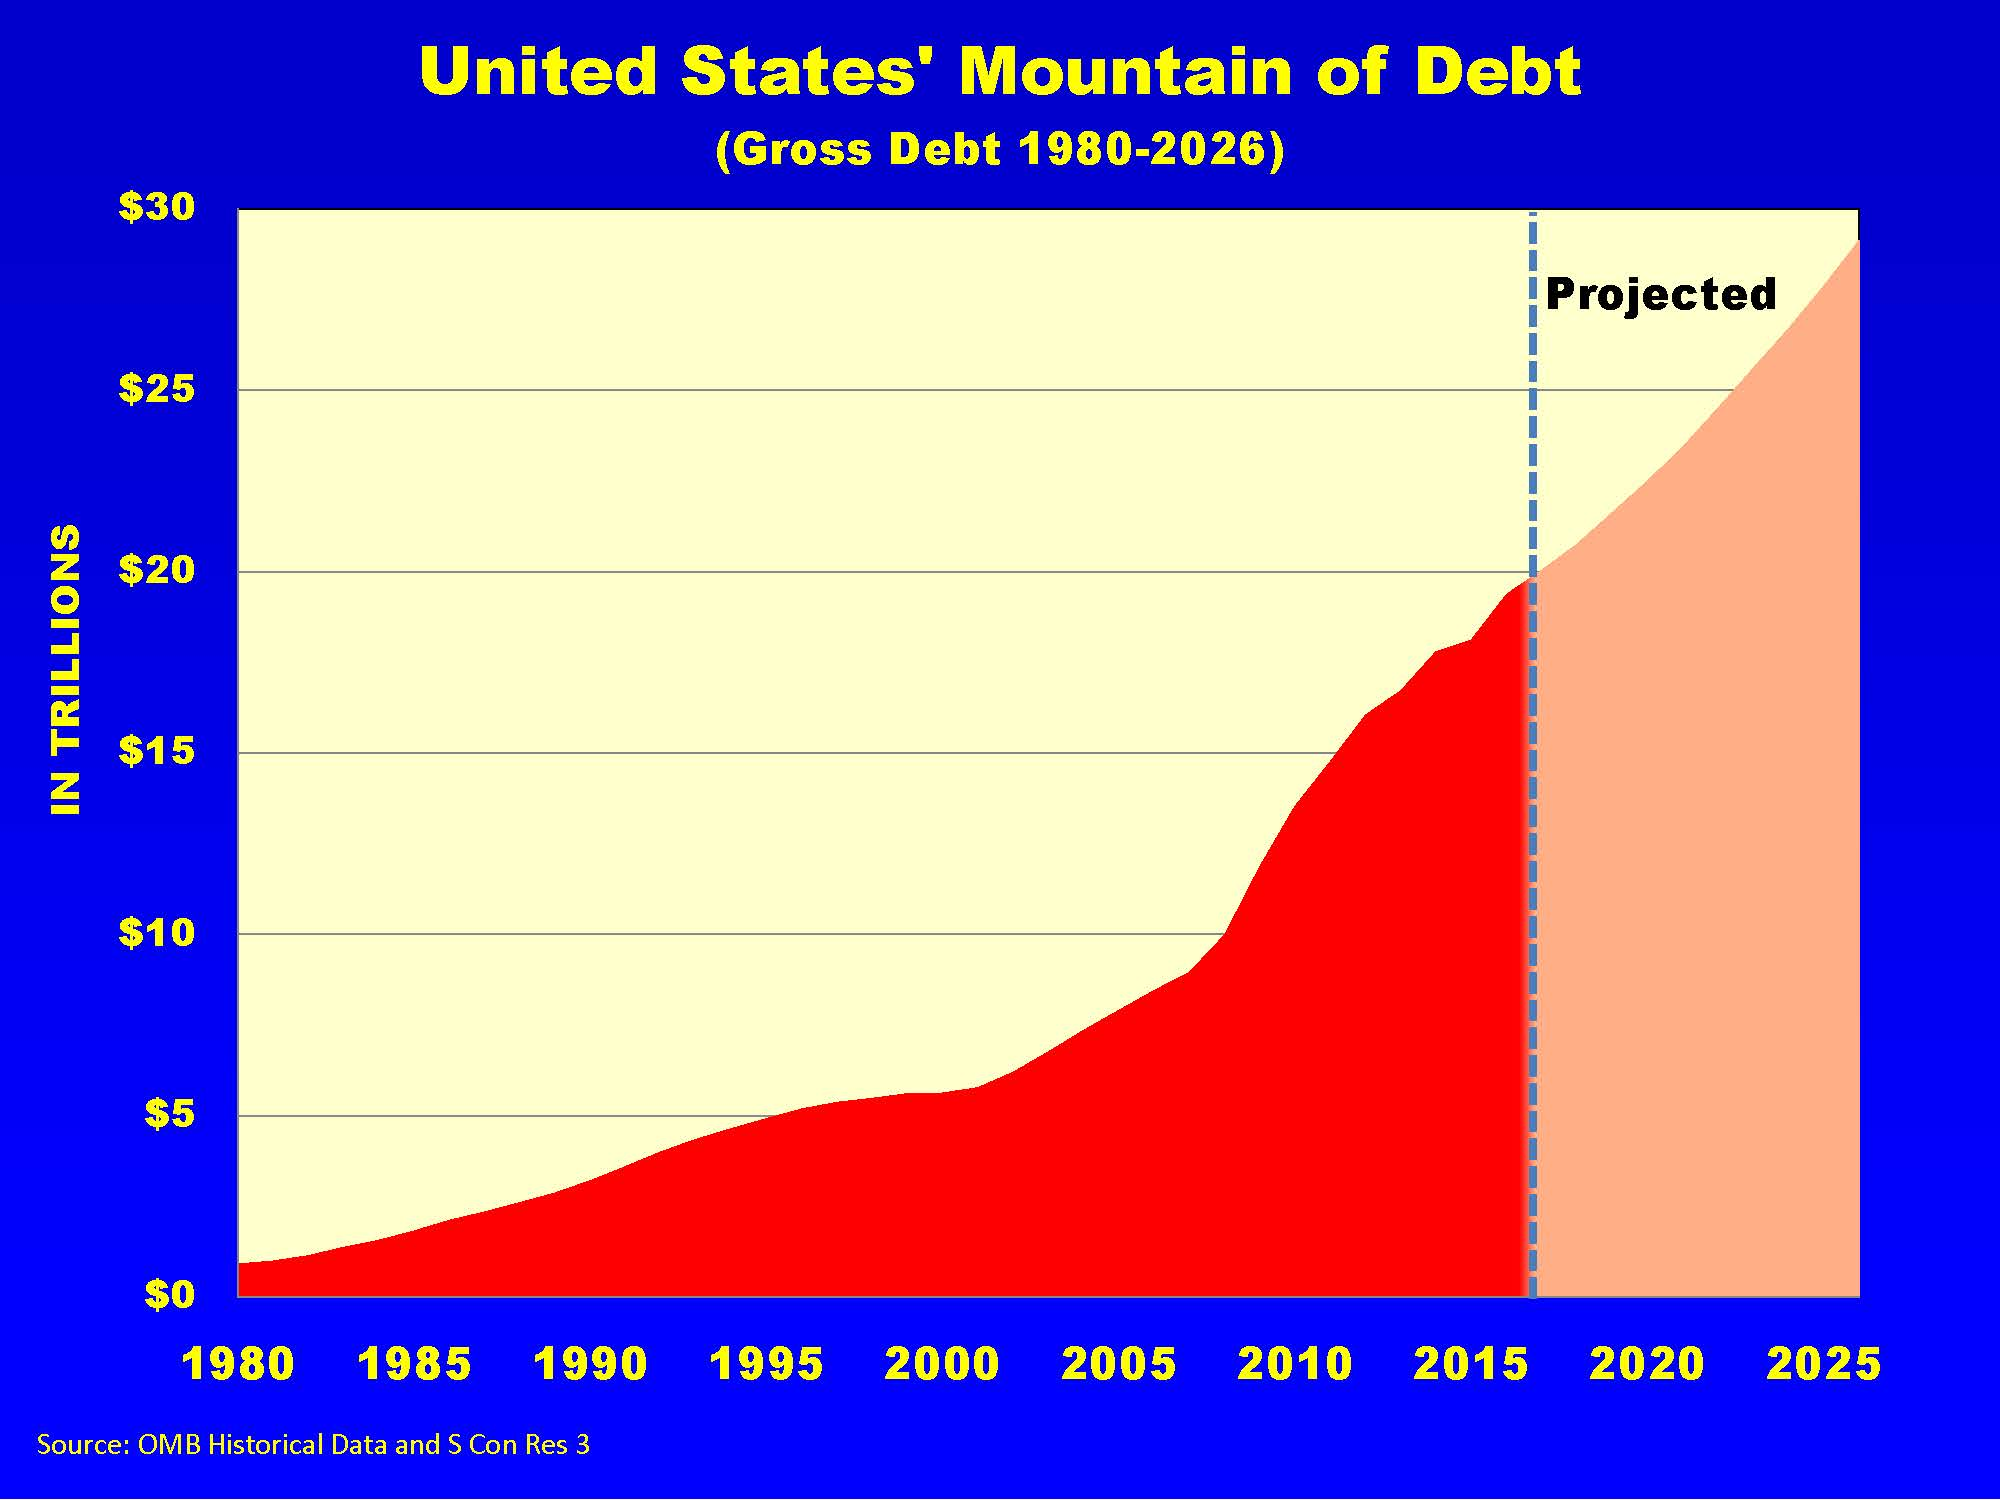 United States' Mountain of Debt